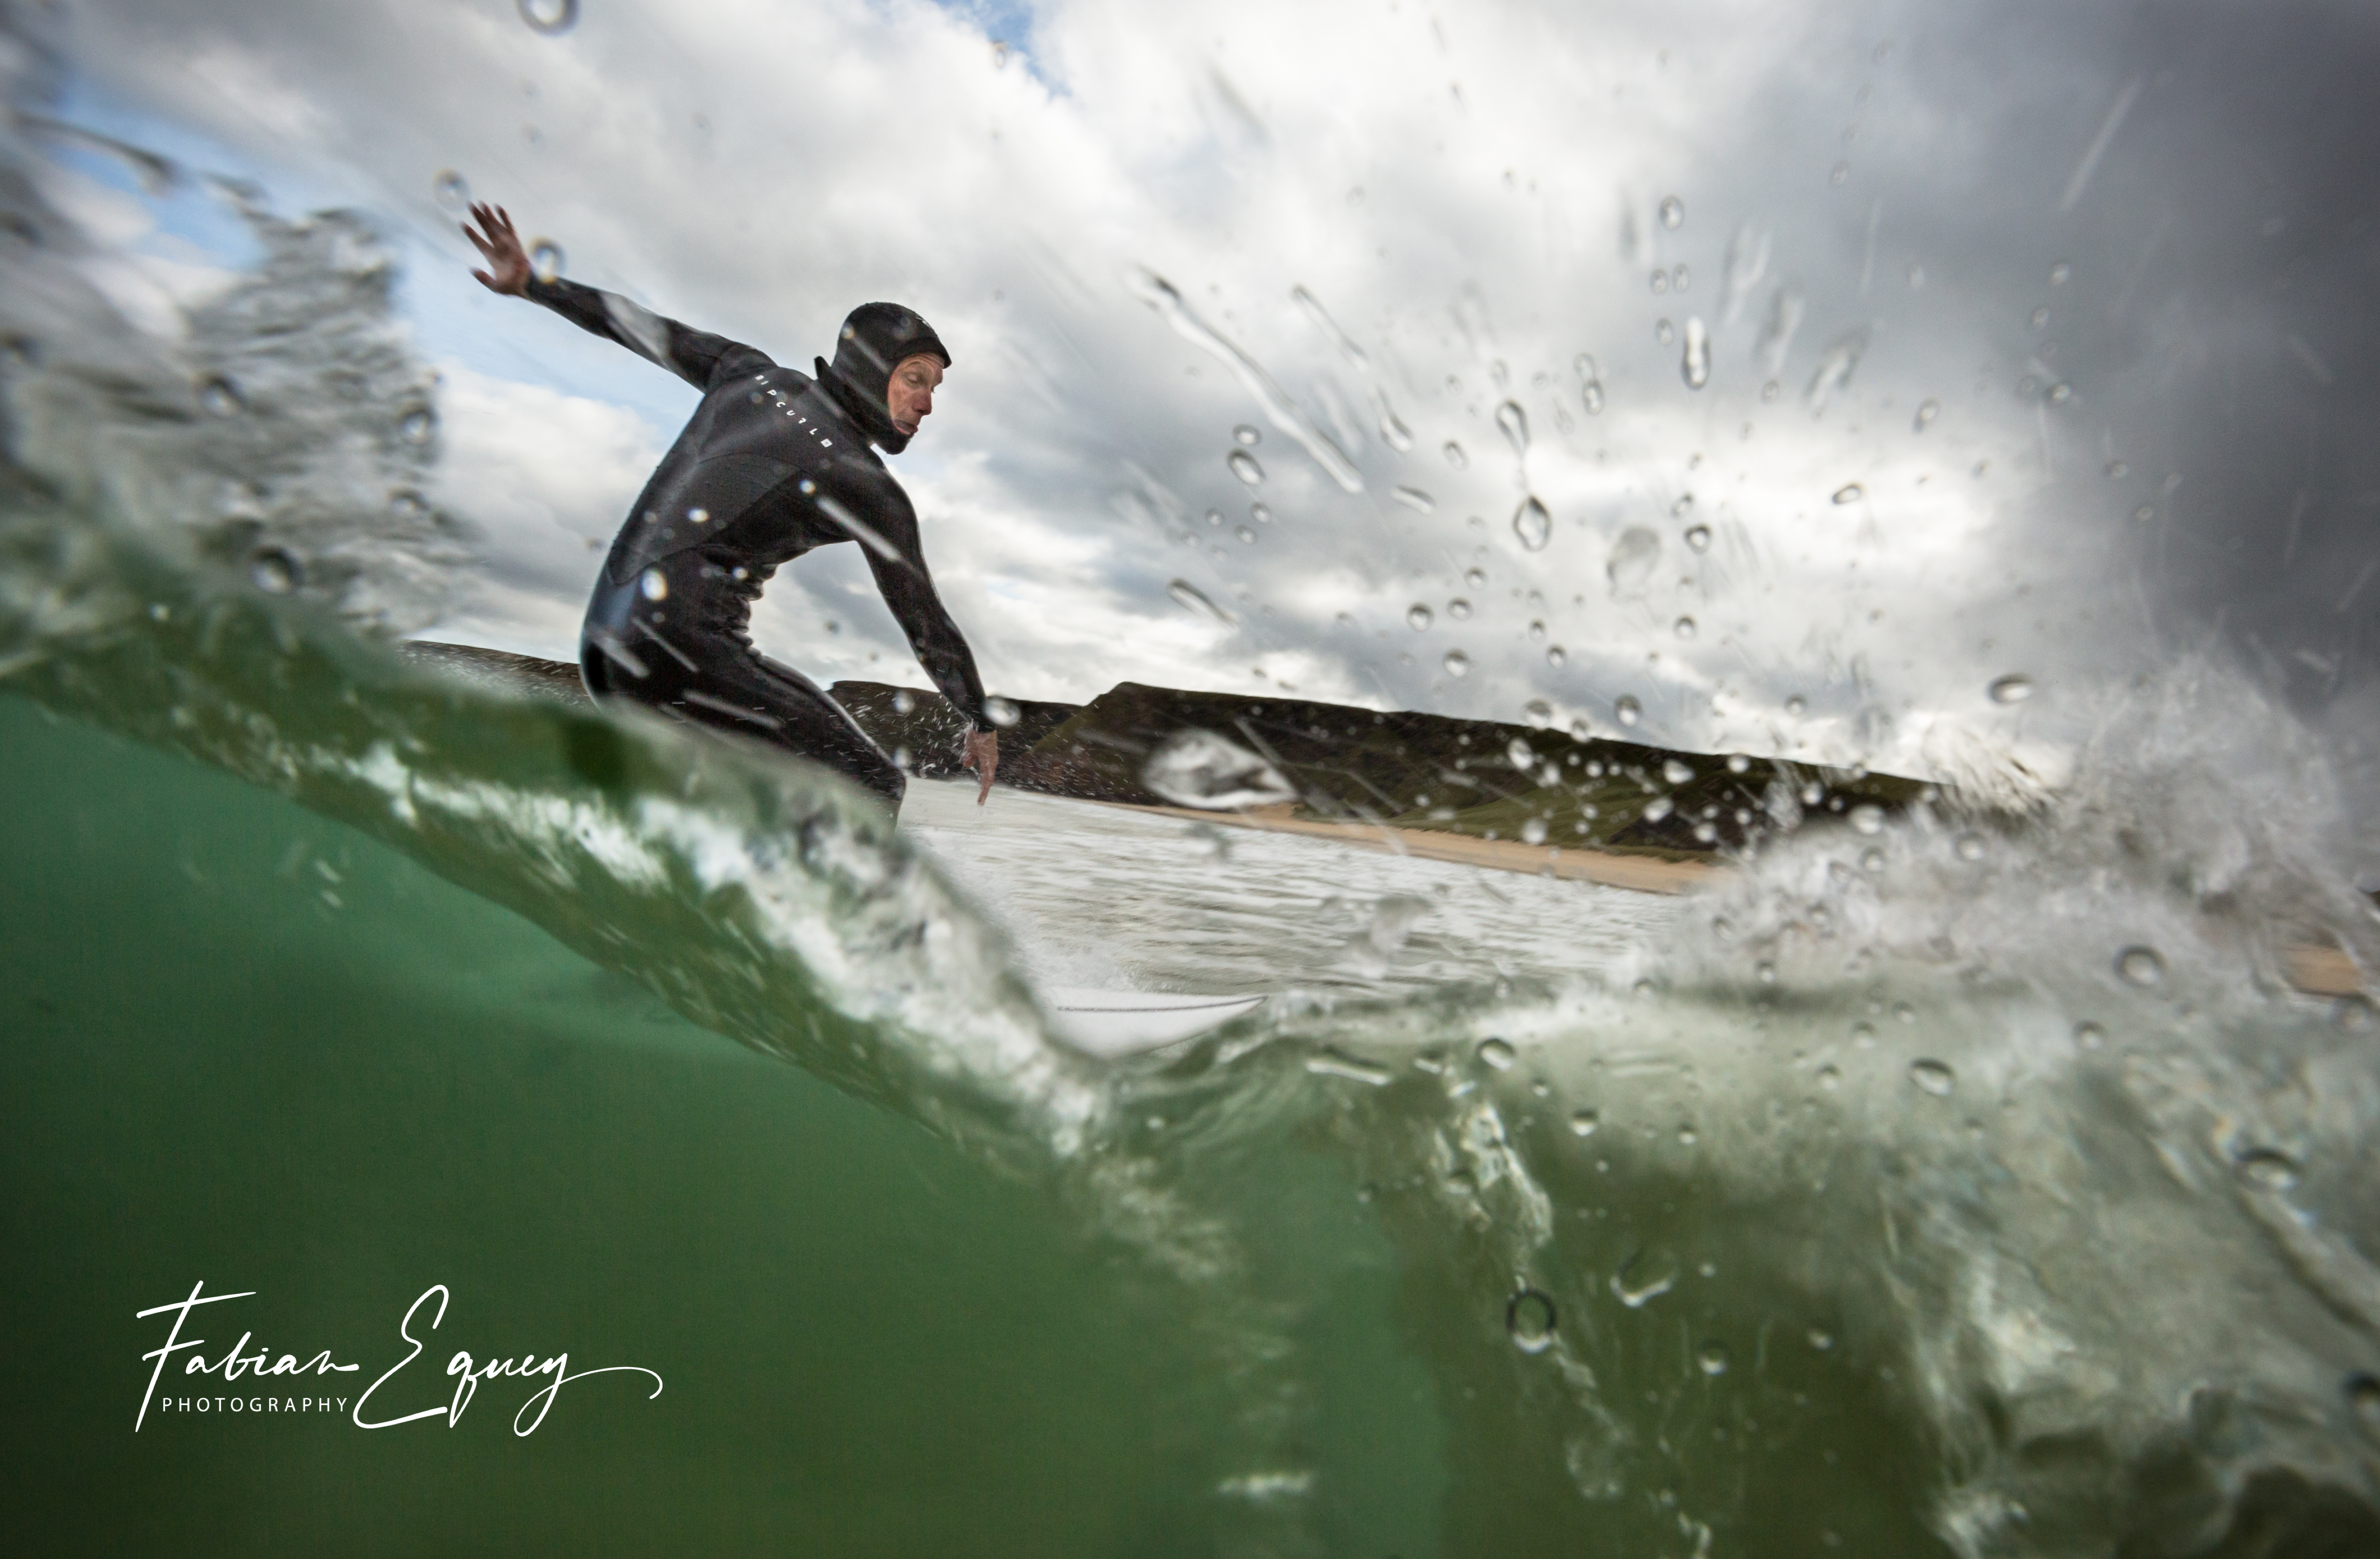 Surfer: Fred. Scotland